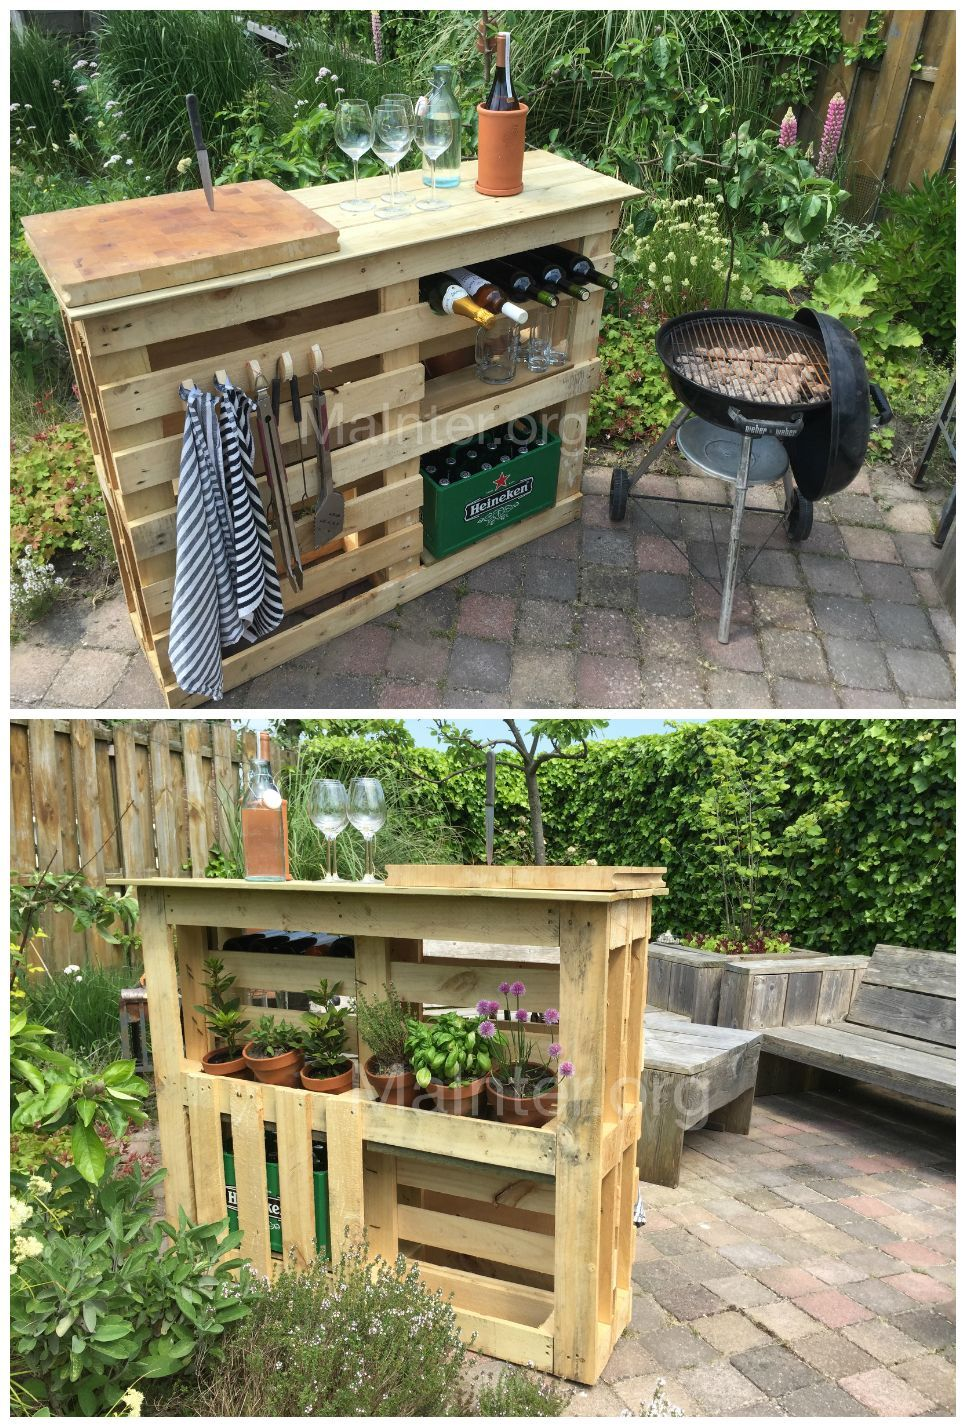 Photo of Bbq Side Table Made From 2 Old Pallets & Old Boards • 1001 Pallets